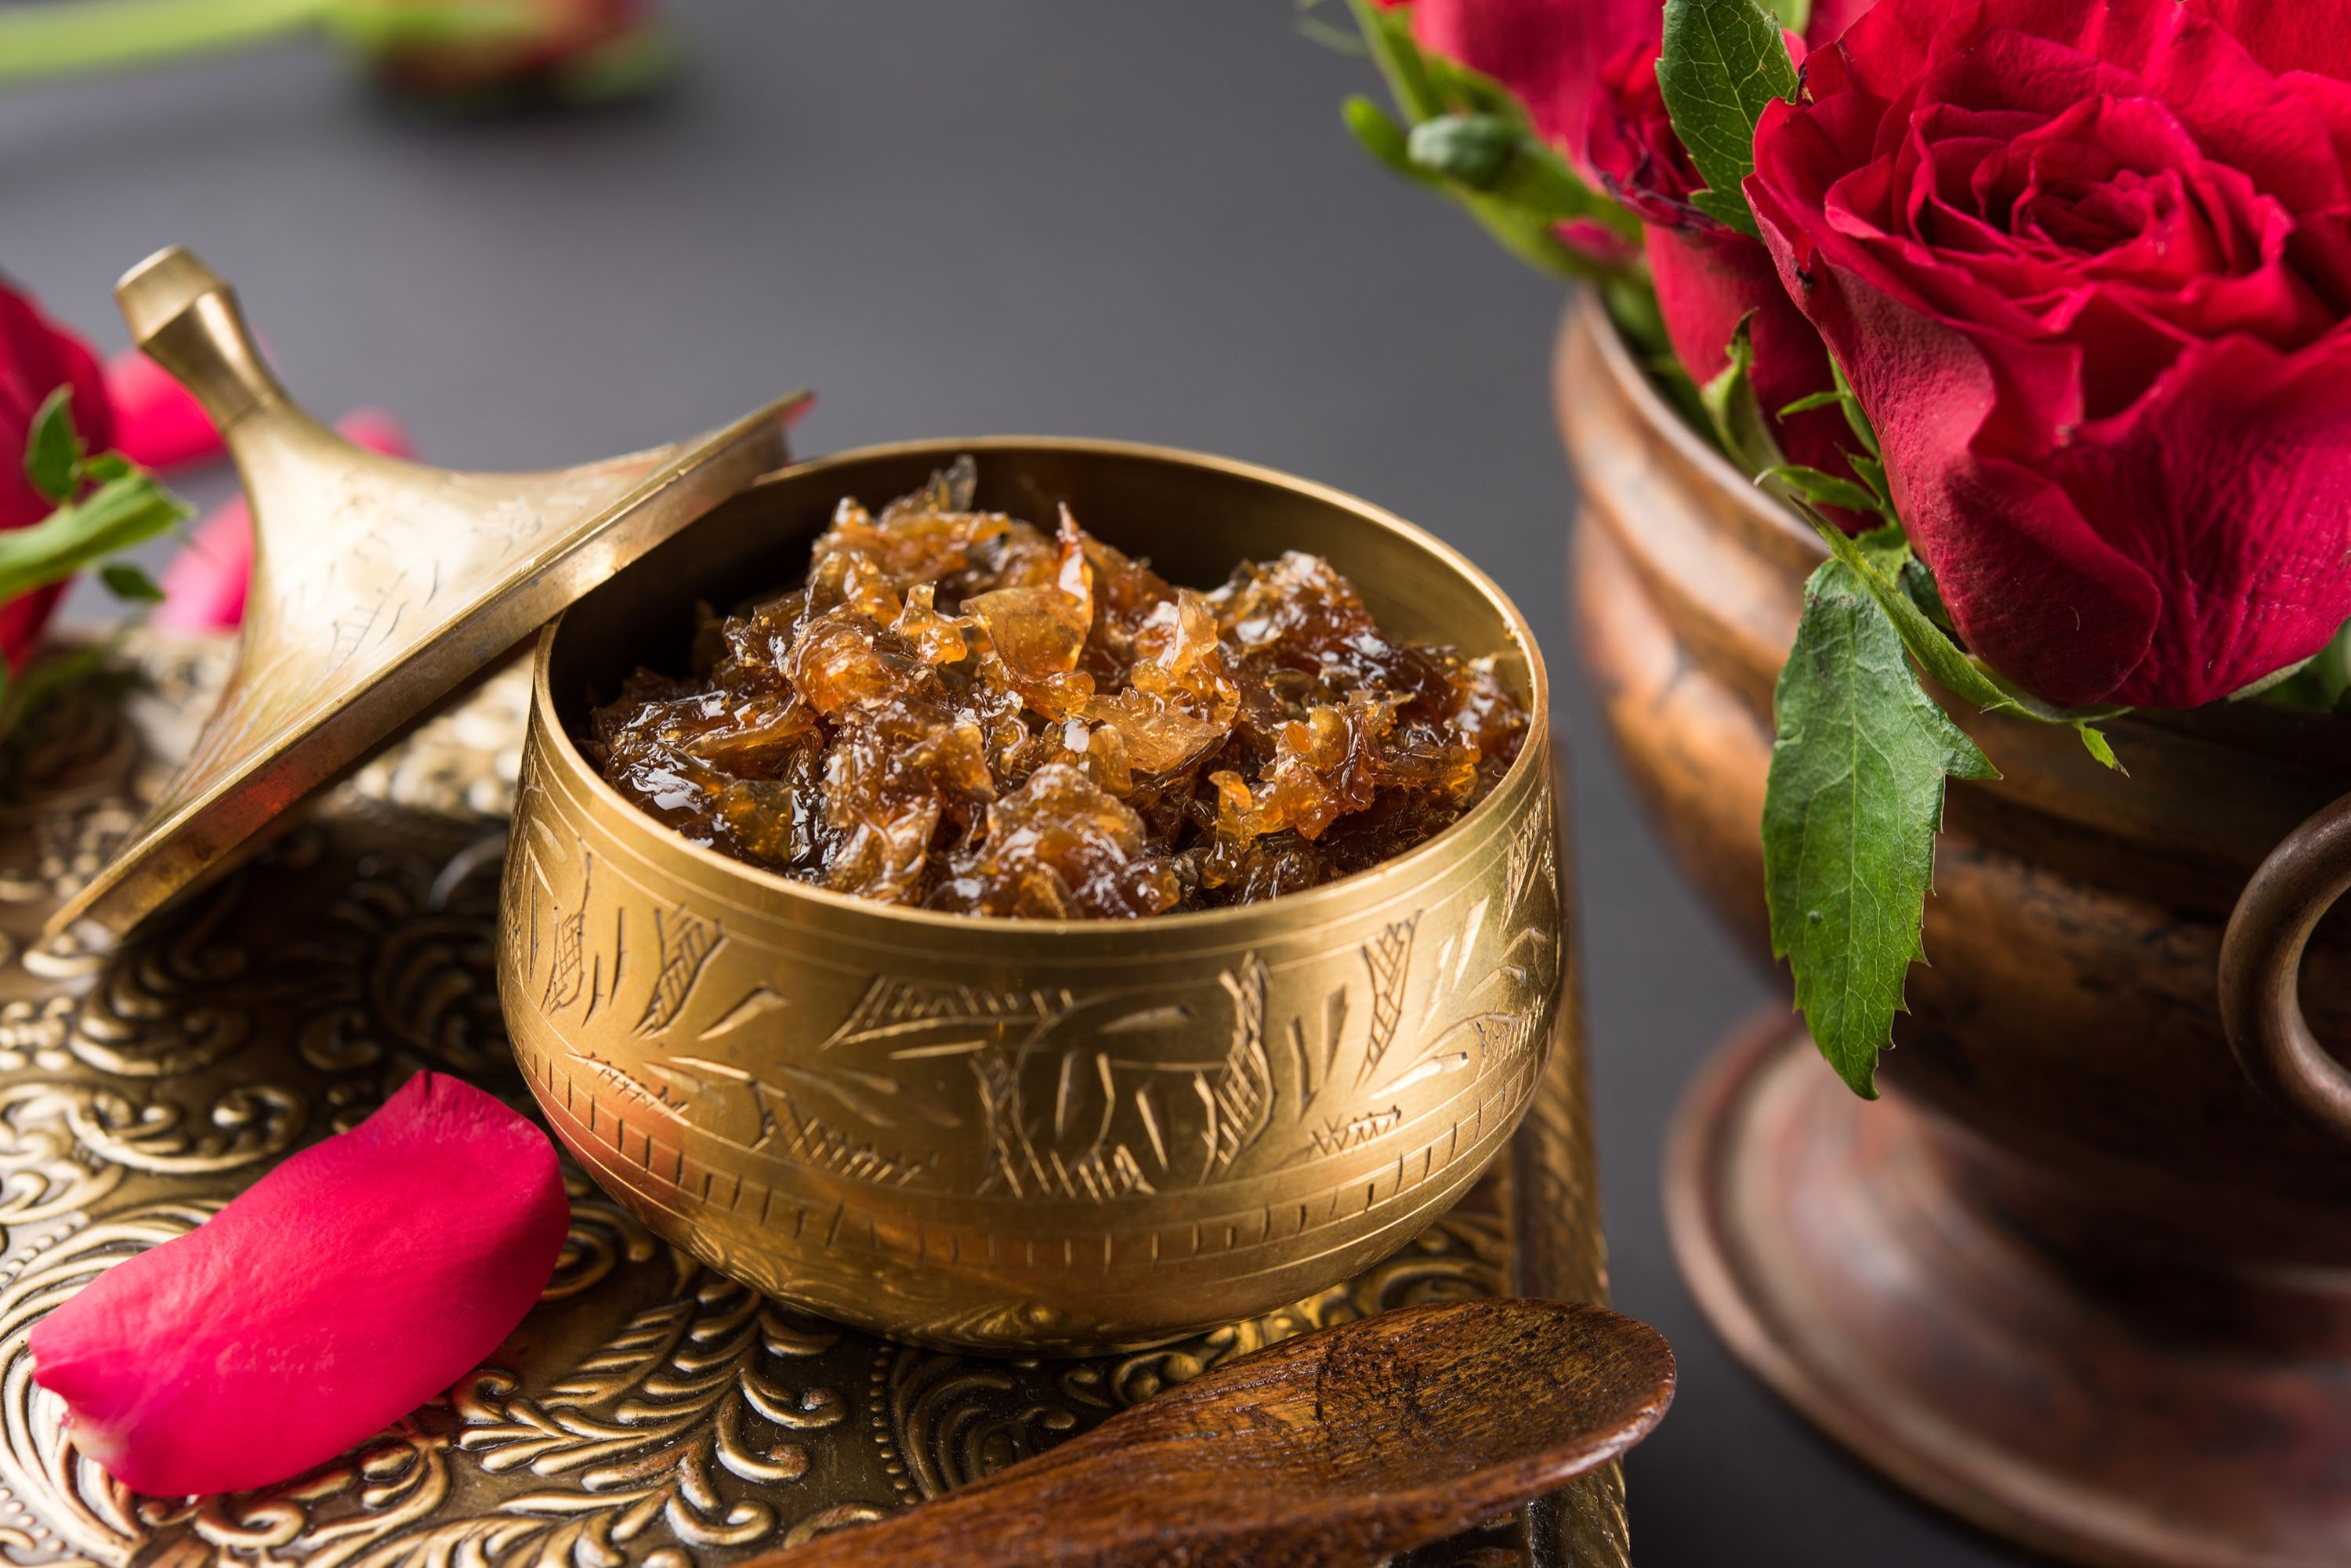 Gulkand is a type of jam made from rose petals, and it gives an interesting flavor to chai. (Shutterstock Photo)